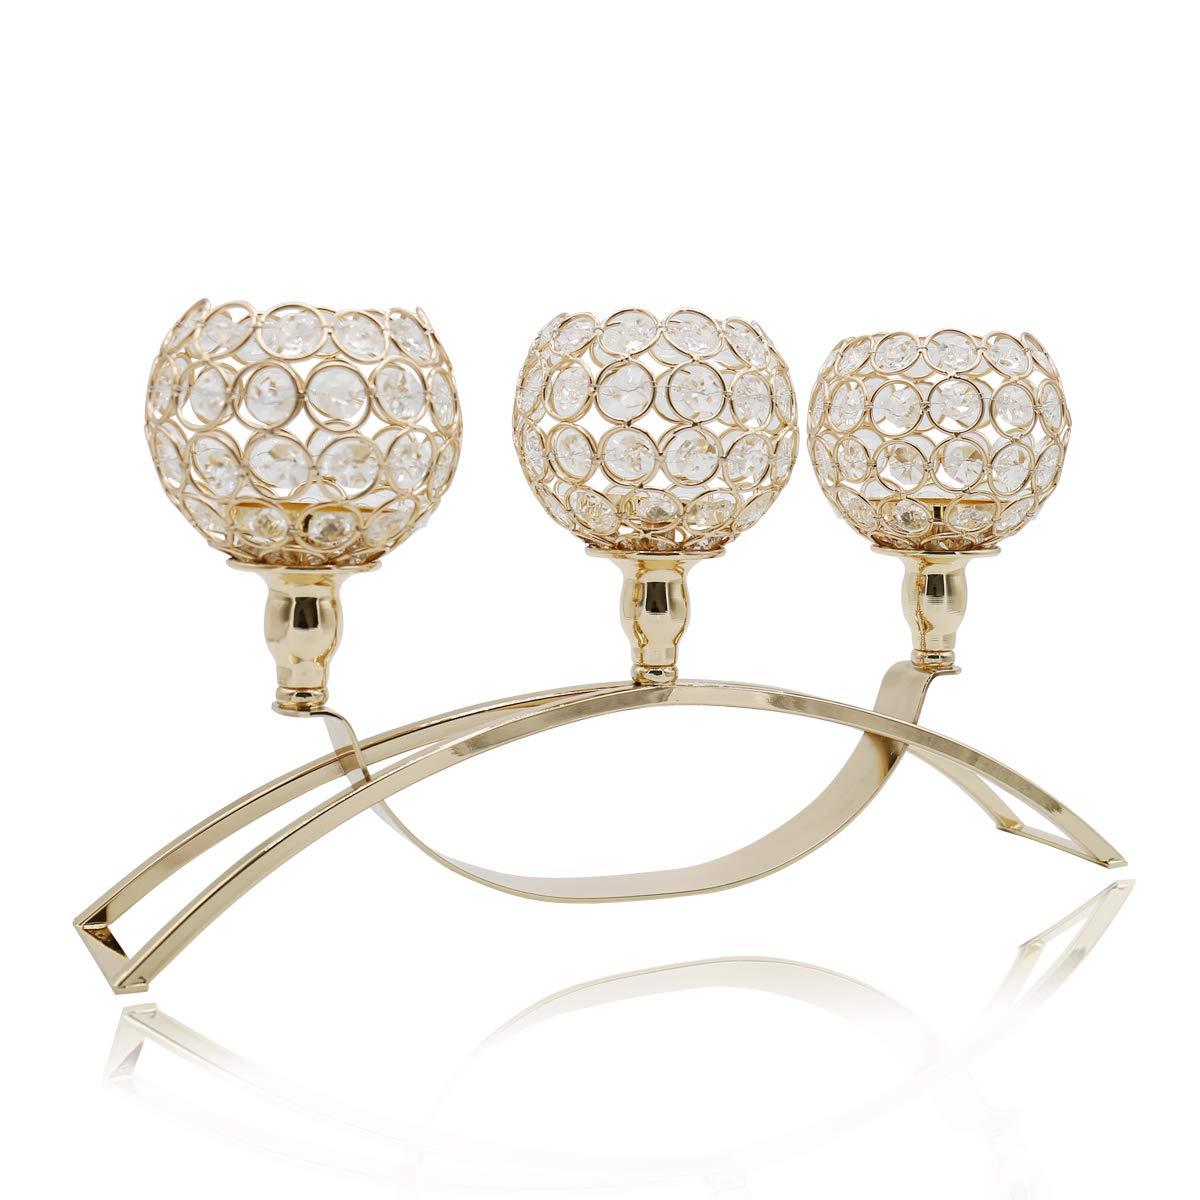 Joynest Crystal Candle Holders with 3 Arms, Wedding Coffee Table Decorative Centerpiece Candelabra, Tealight Candlestick Holder for Home/Holiday Decoration/Birthday (Gold)